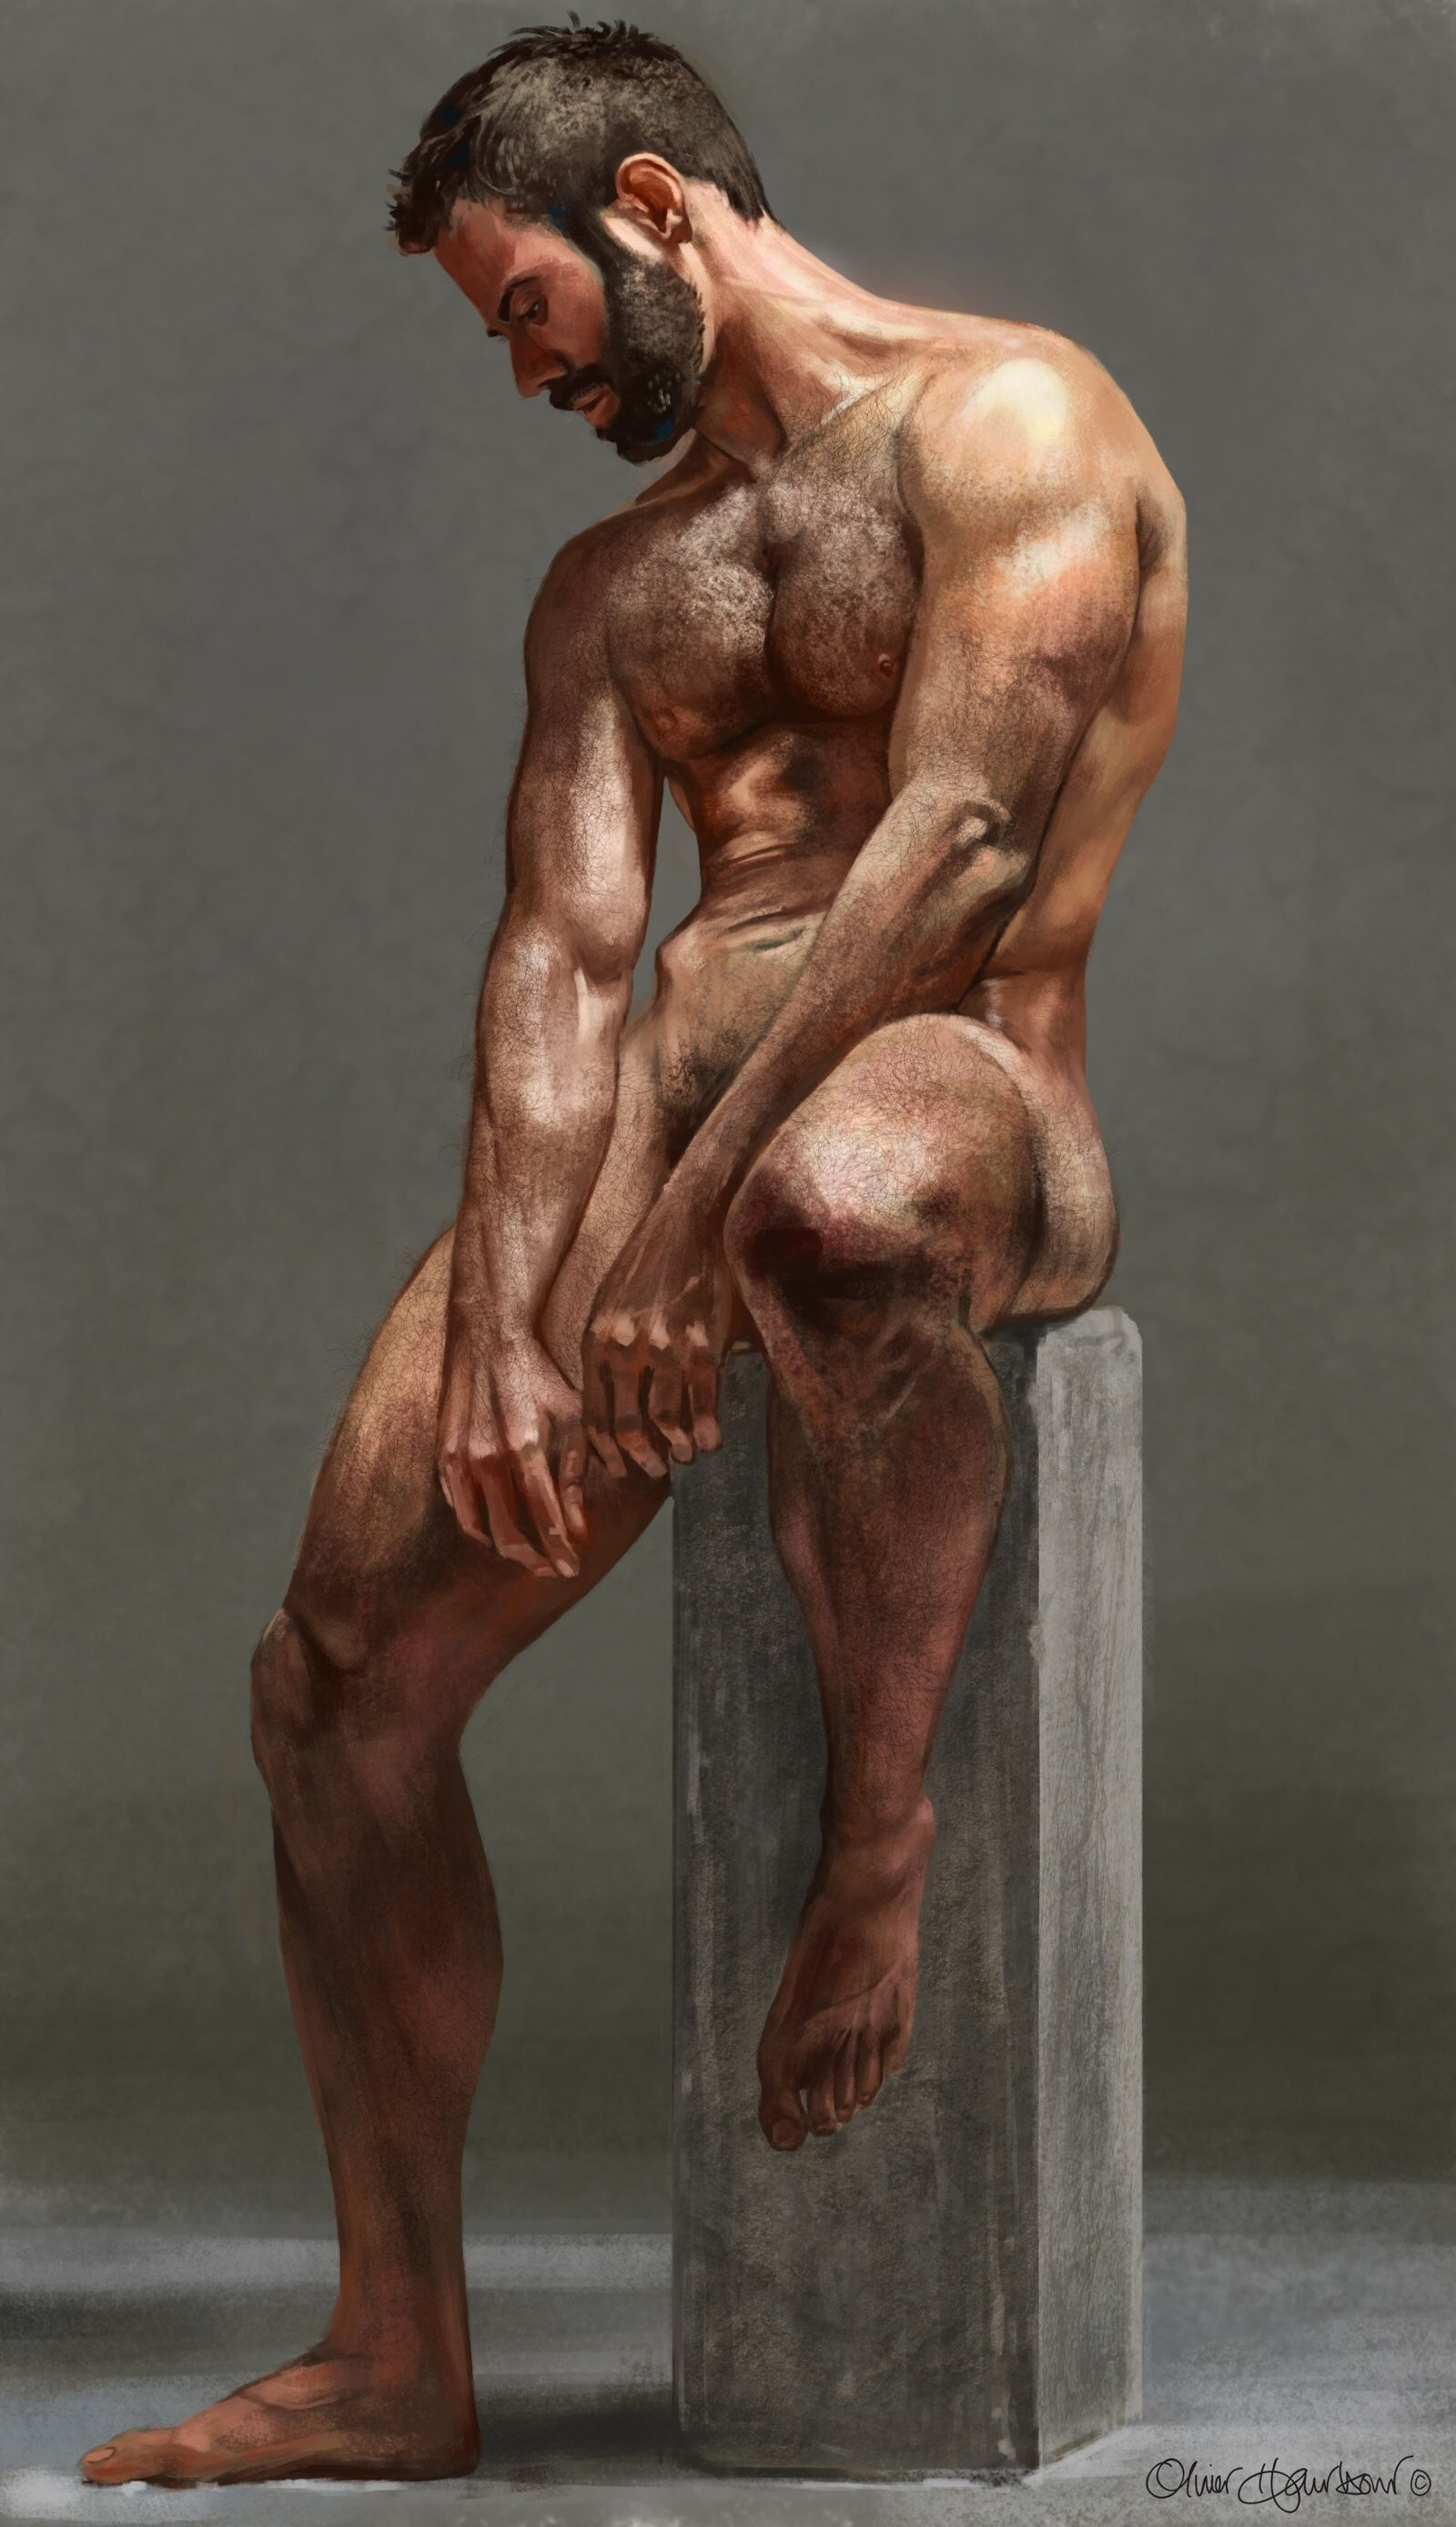 So Getting To Grips With This Anatomy Lark What Do You Think Of